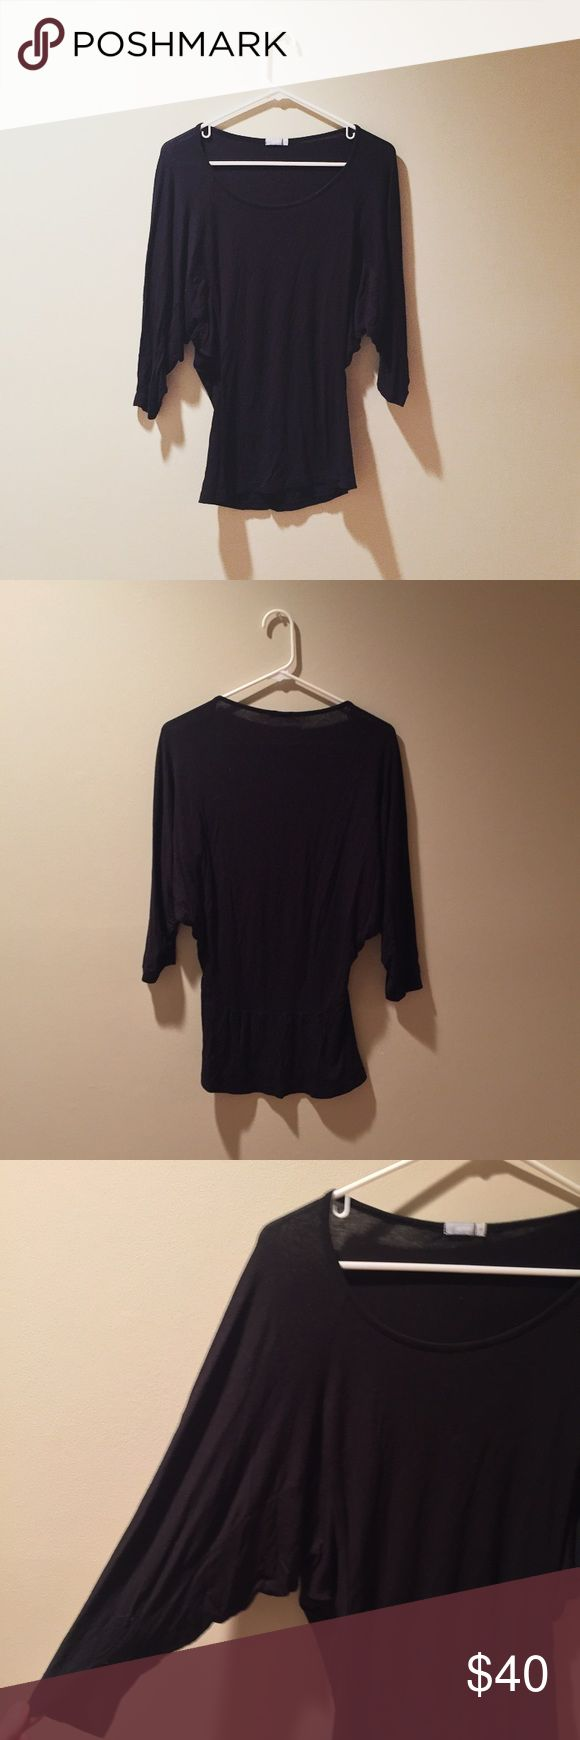 black batwing top brand:  urban (not urban outfitters! bought overseas). tight fitted black batwing top with scoop neck. very versatile! size medium but can fit a size small. in excellent condition!   🍃 10% off bundles! 🍃 always open to offers! 🍃 feel free to leave any questions or comments! Urban Outfitters Tops Tees - Long Sleeve